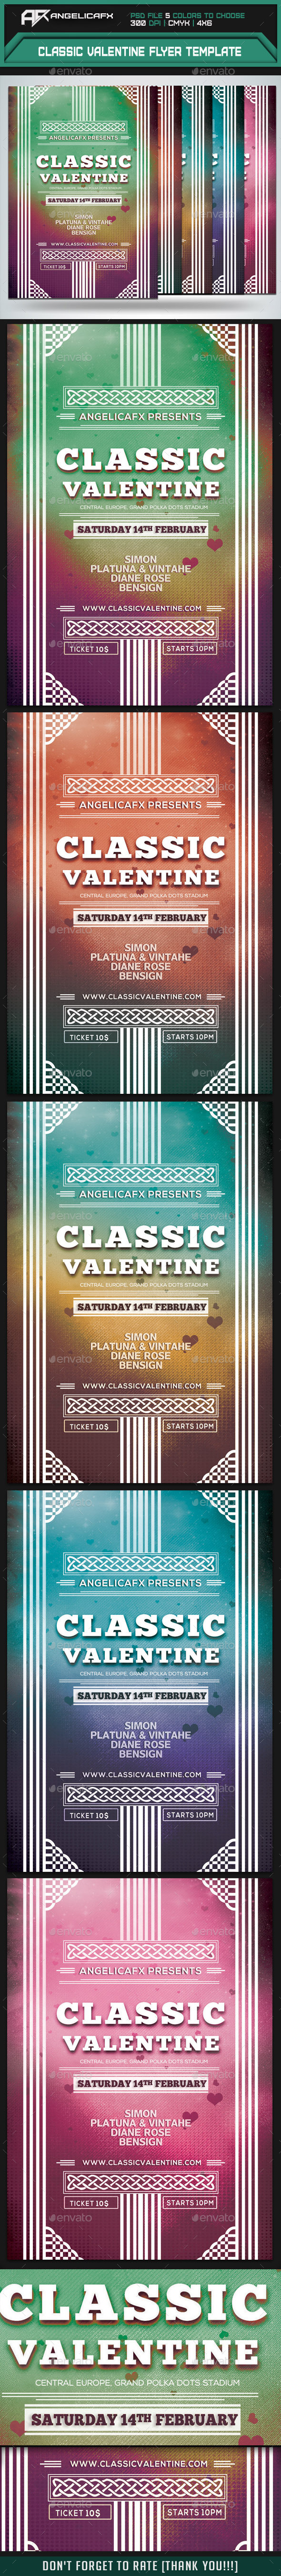 Classic Valentine Flyer Template - Events Flyers